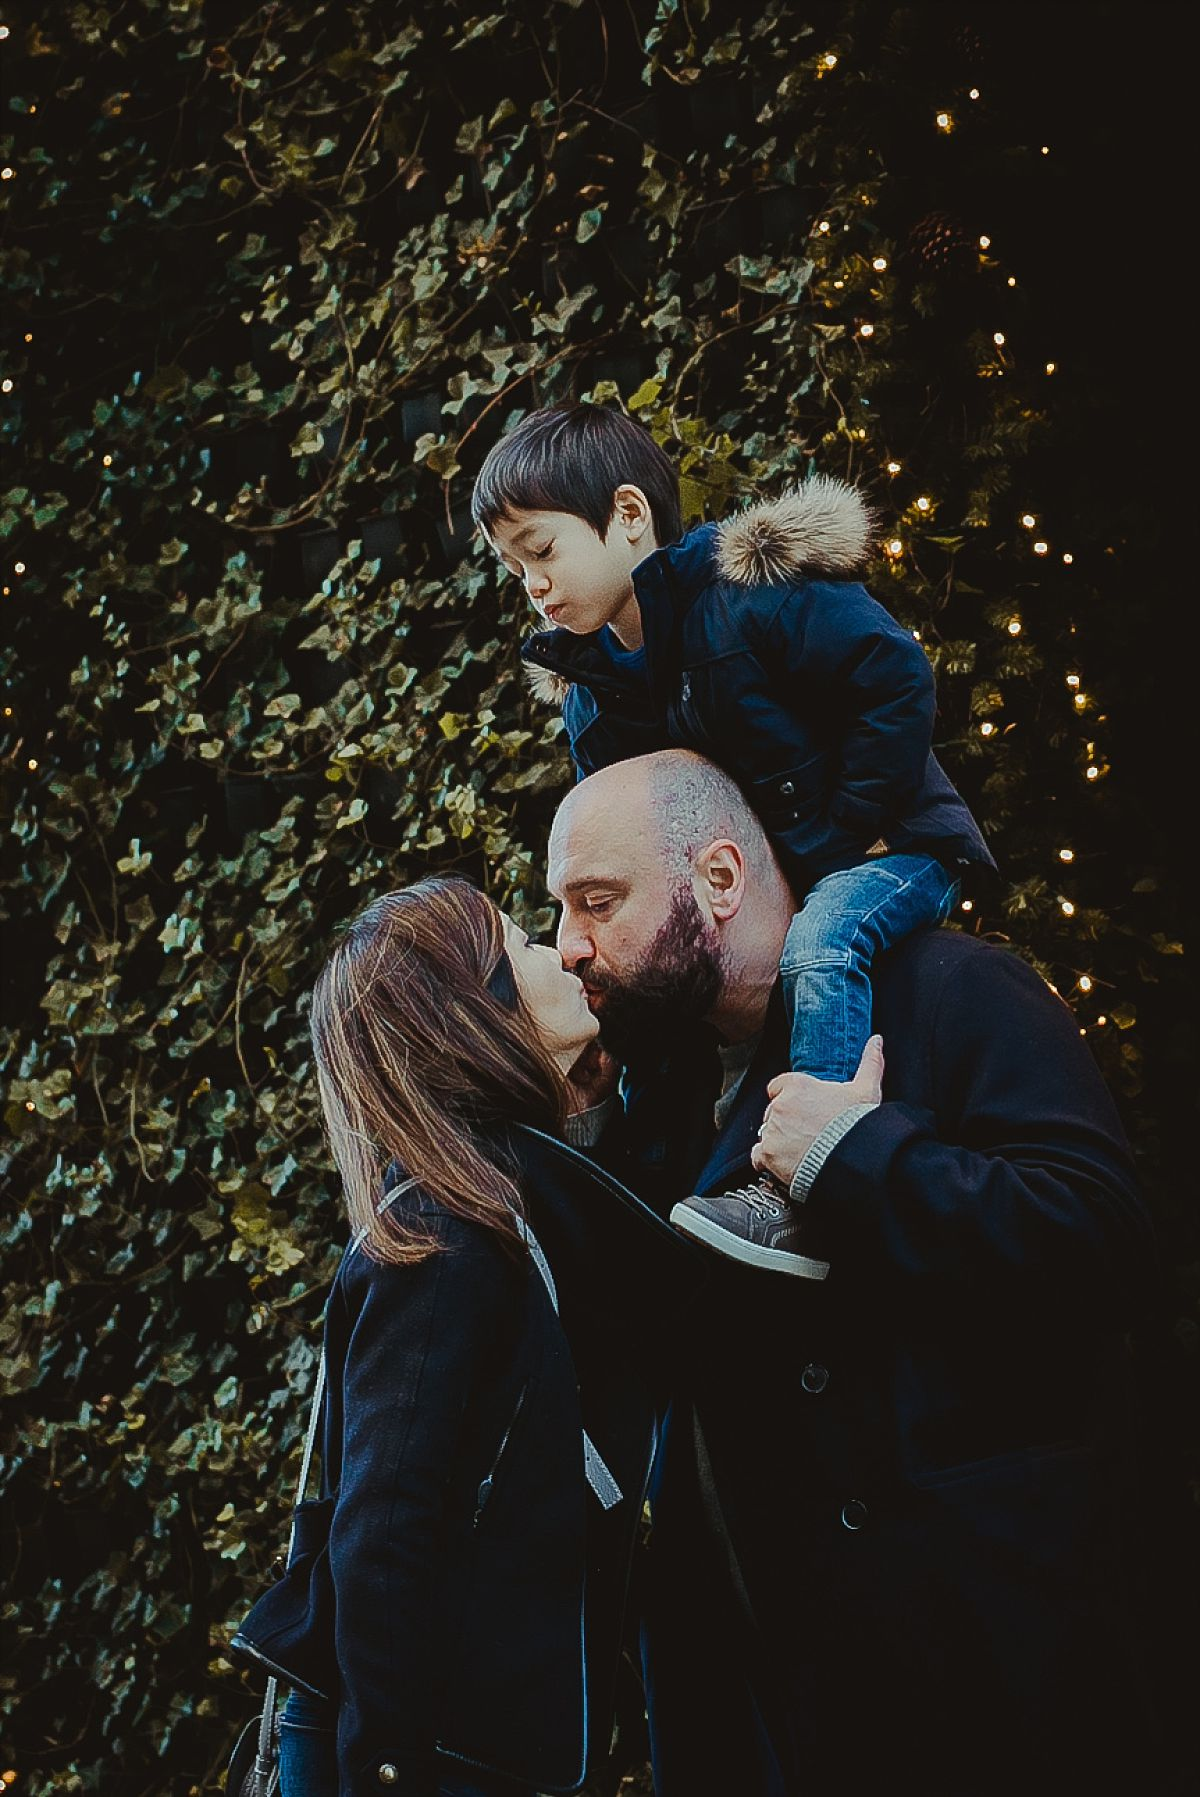 mom kissing dad while son enjoys shoulder ride from dad during family photo session in nyc. photo by nyc family photographer krystil mcdowall